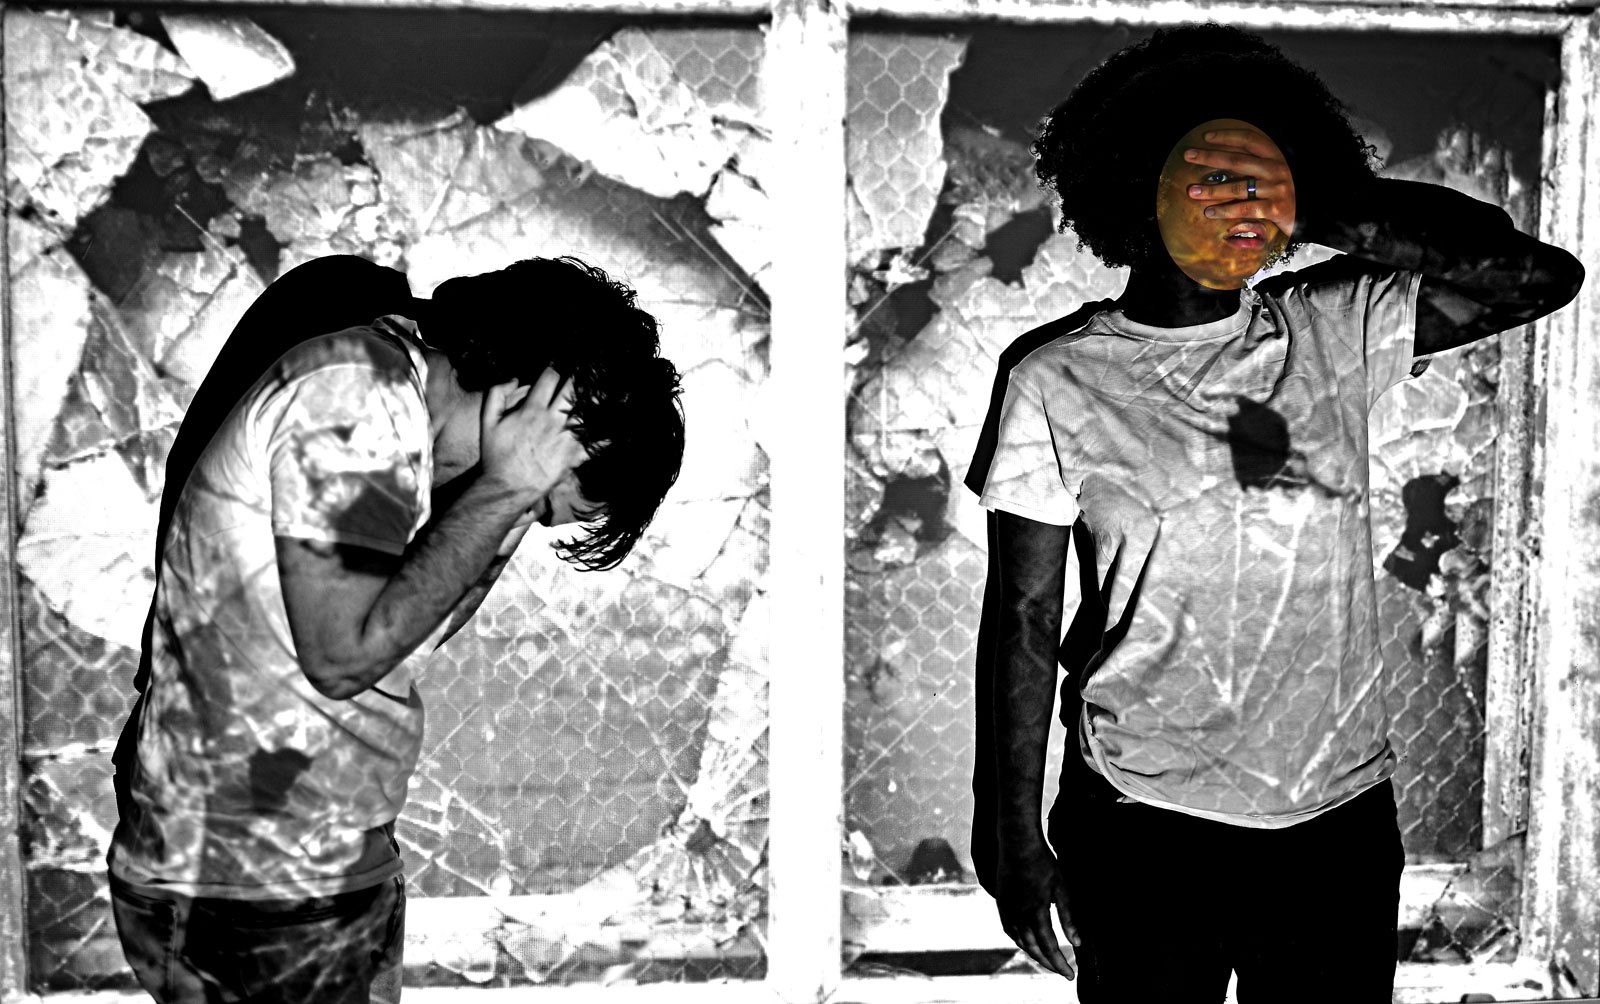 Image from the Femmetography exhibition showing two Teen Curators pictured with fragmented glass